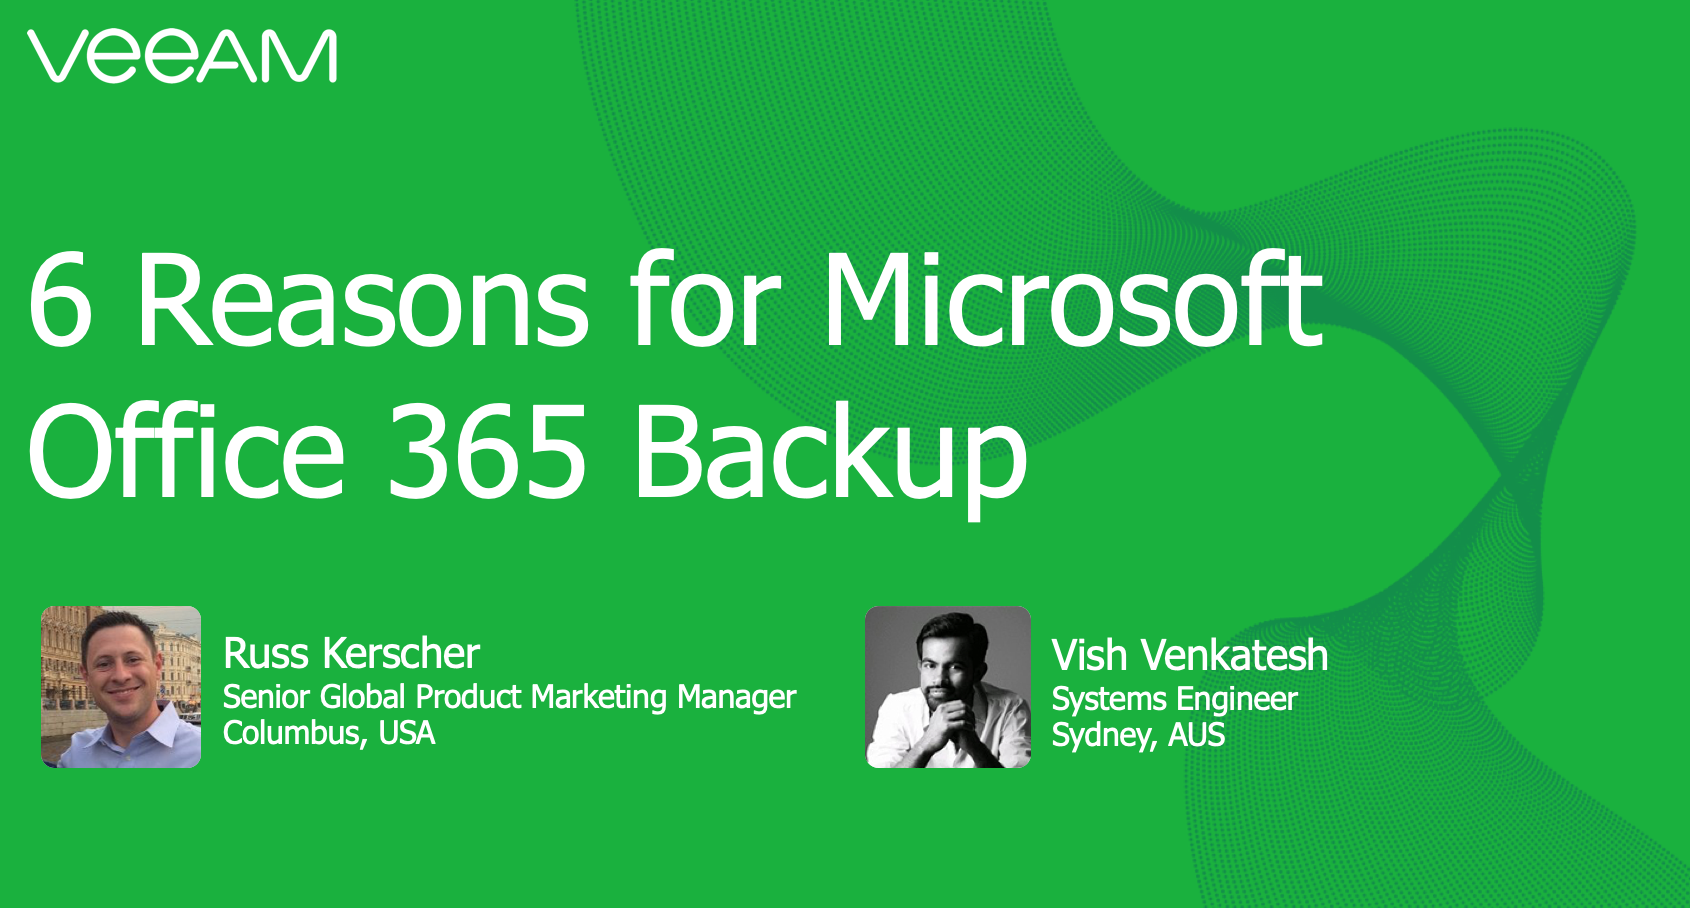 Six reasons for Microsoft Office 365 backup